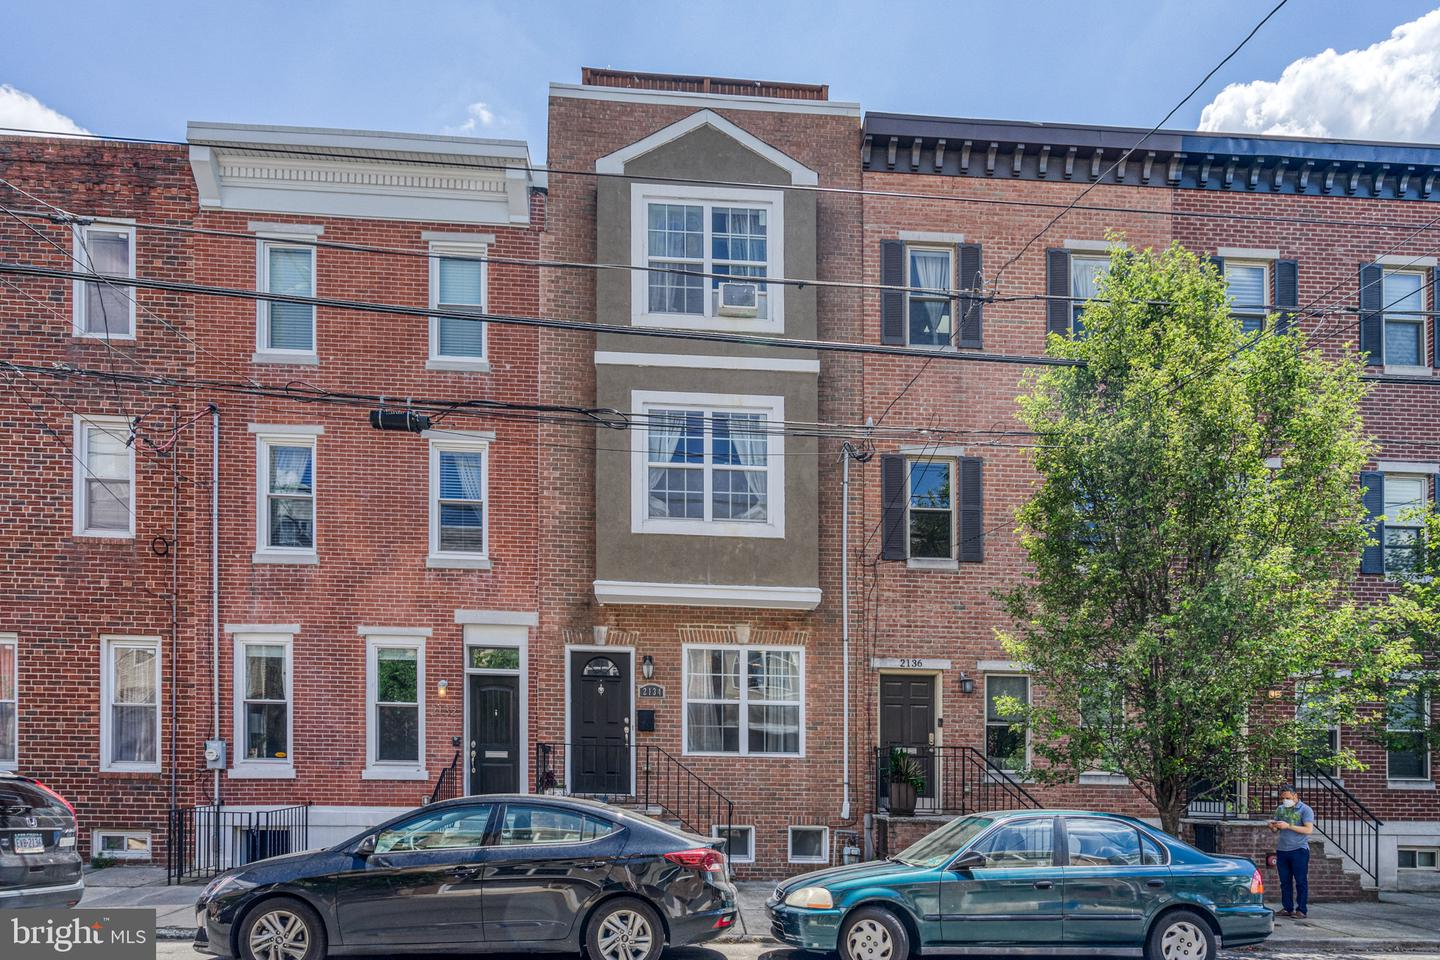 2134 Carpenter Street Philadelphia, PA 19146